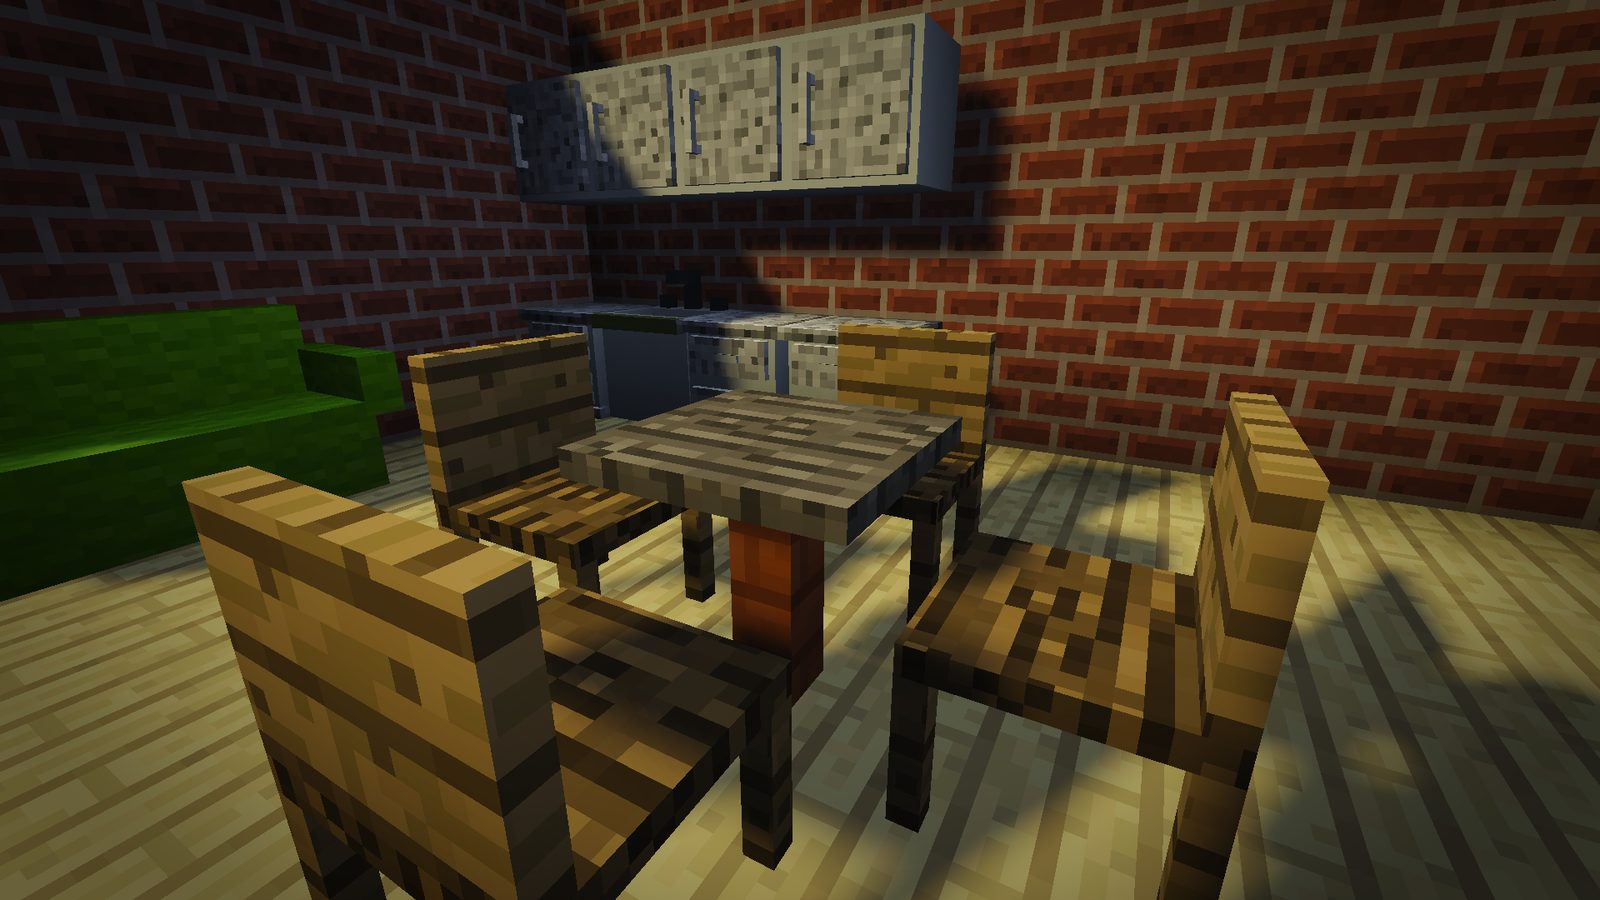 Minecraft Kitchen Mod 1.12.2 Mrcrayfish 39s Furniture Mod For Minecraft 1 12 2